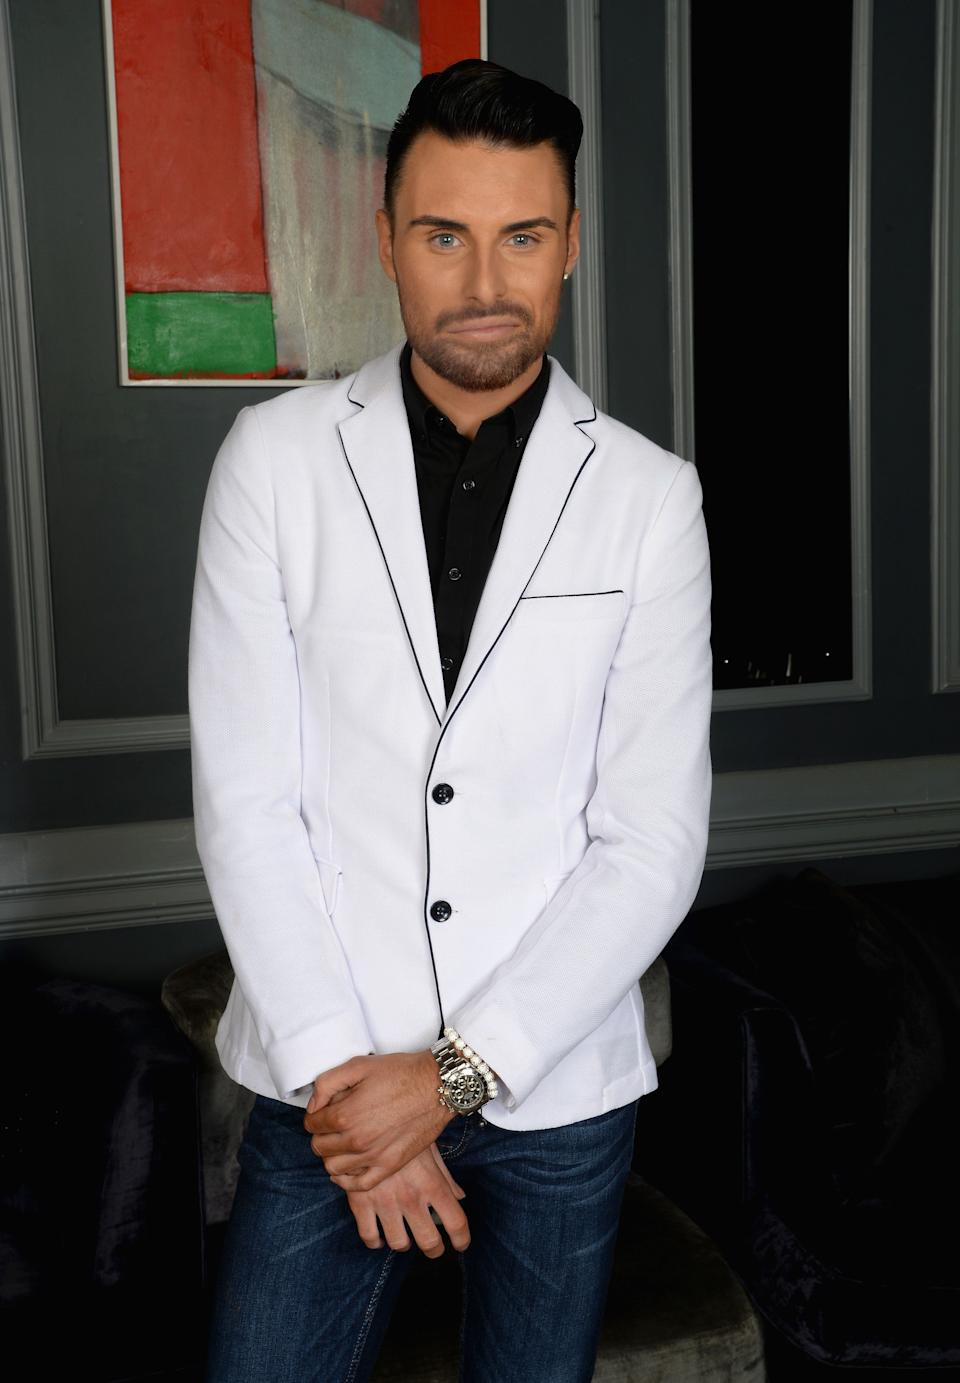 While most people think Rylan rose to fame on The X Factor, a few fans will remember that he was actually a contestant on Signed By Katie Price first, having failed to land a spot in the regular Big Brother house years before. <br /><br />Following his success in Celebrity Big Brother, he later replaced Emma Willis on spin-off show, Bit On The Side, and won praise for his performance in Celebrity Masterchef, though he was less successful when Bake Off came calling in 2019.<br /><br />He also returned to reality TV as a candidate on the celebrity version of The Apprentice in 2019, going on to describe the experience as one of the worst of his life.